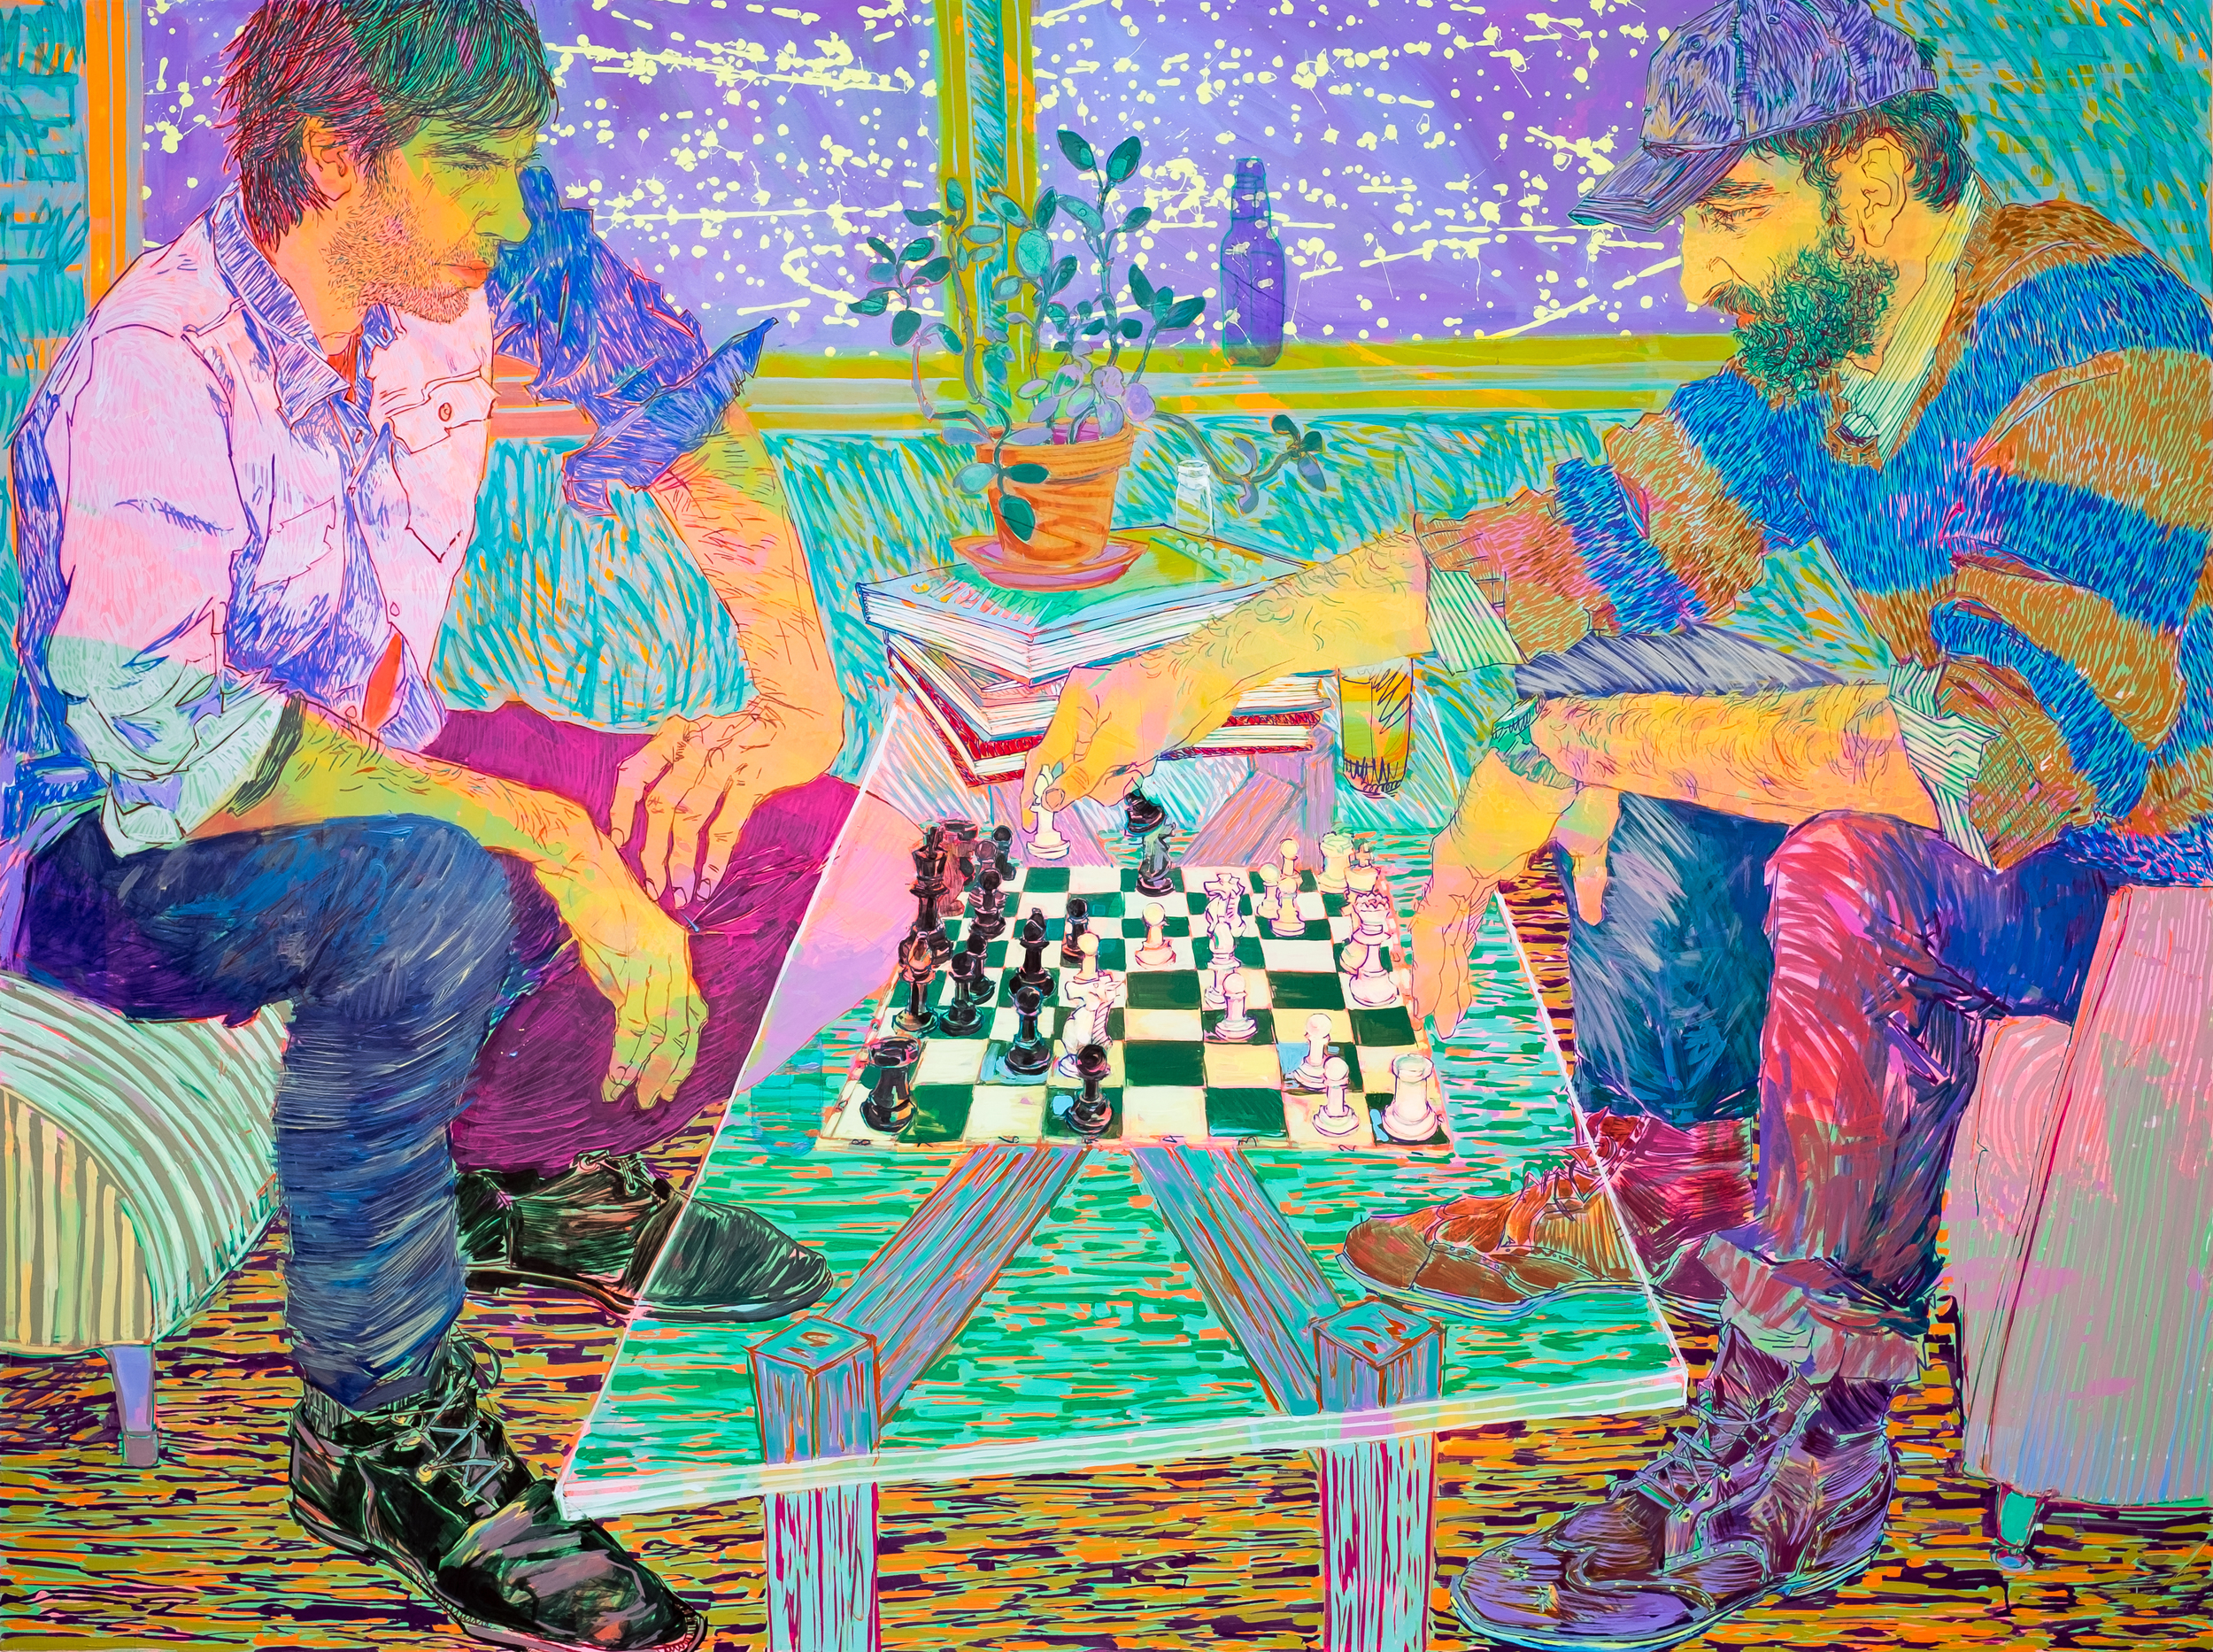 Hope Gangloff, Bodner/Caivano Chess Match , 2016,Acrylic on canvas,72 x 96 in.Images courtesy of Susan Inglett Gallery and Richard Heller Gallery.Photography by: Donald Stahl